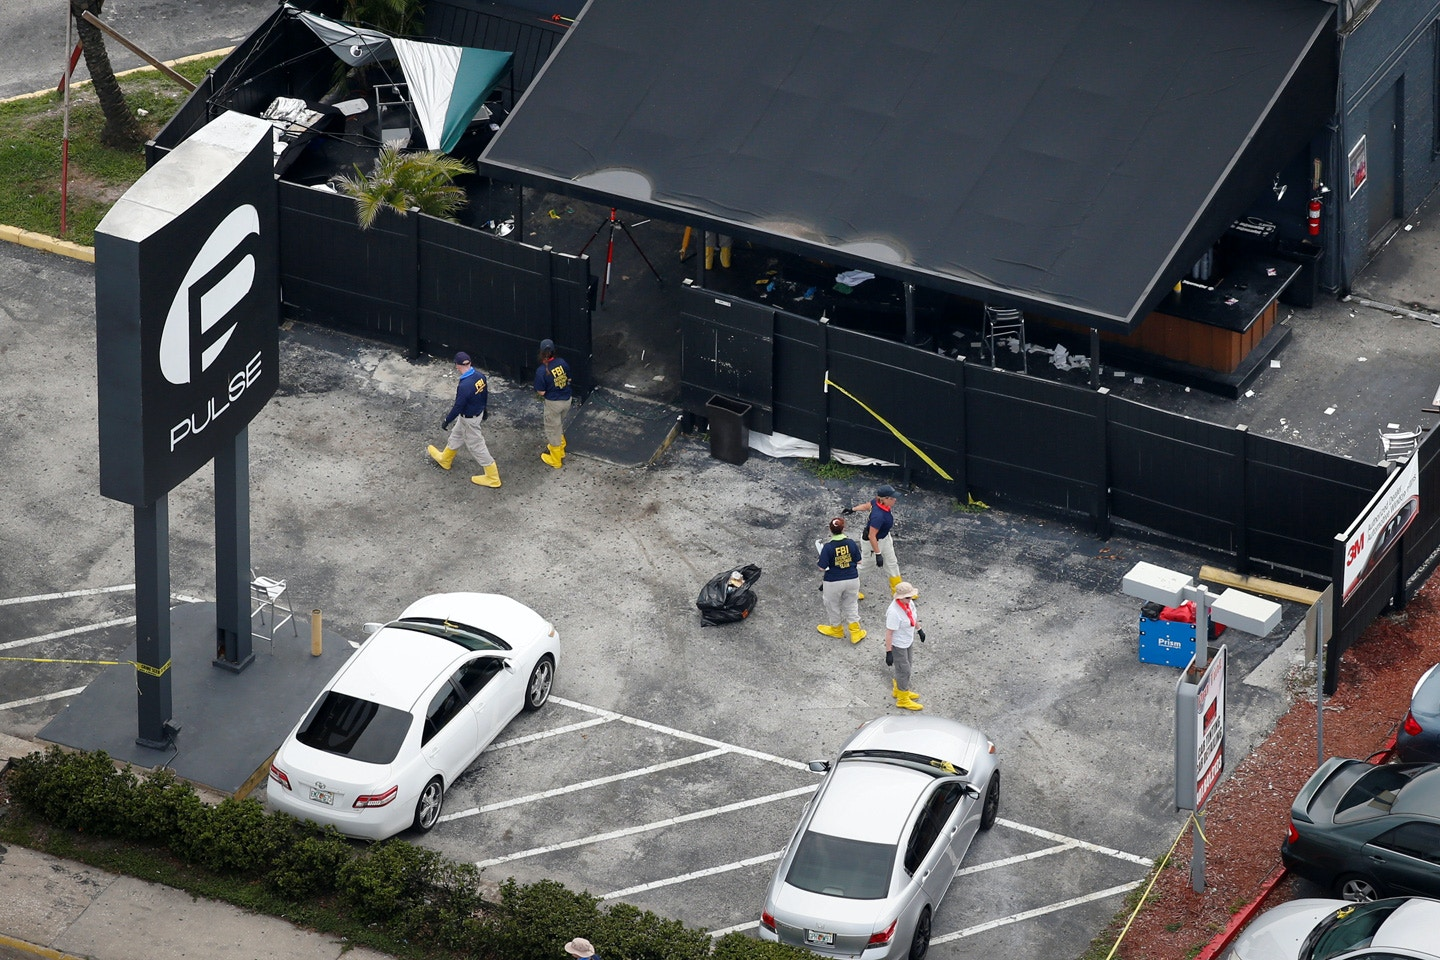 Federal Bureau of Investigation (FBI) officials collect evidence from the parking lot of the Pulse gay night club, the site of a mass shooting days earlier, in Orlando, Florida, U.S., June 15, 2016.  REUTERS/Adrees Latif/File Photo - RTX2SKI1